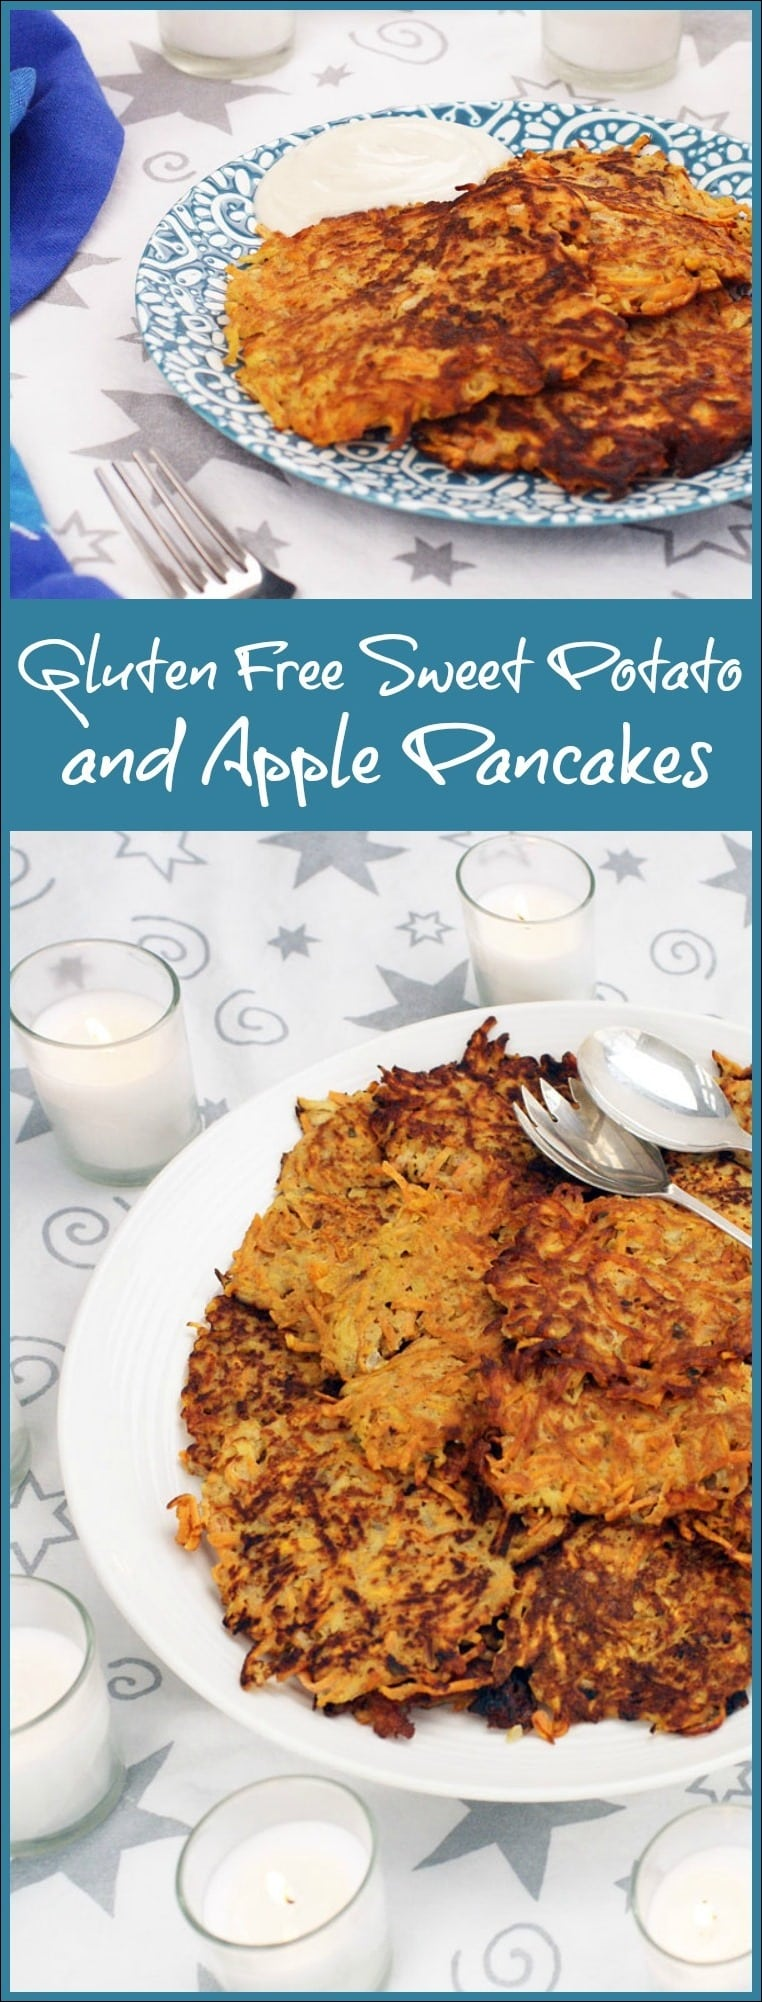 Looking for a gluten free sweet potato pancake? Try these Gluten Free Sweet Potato and Apple Pancakes! Get the gluten free pancake recipe at This Mama Cooks! On a Diet